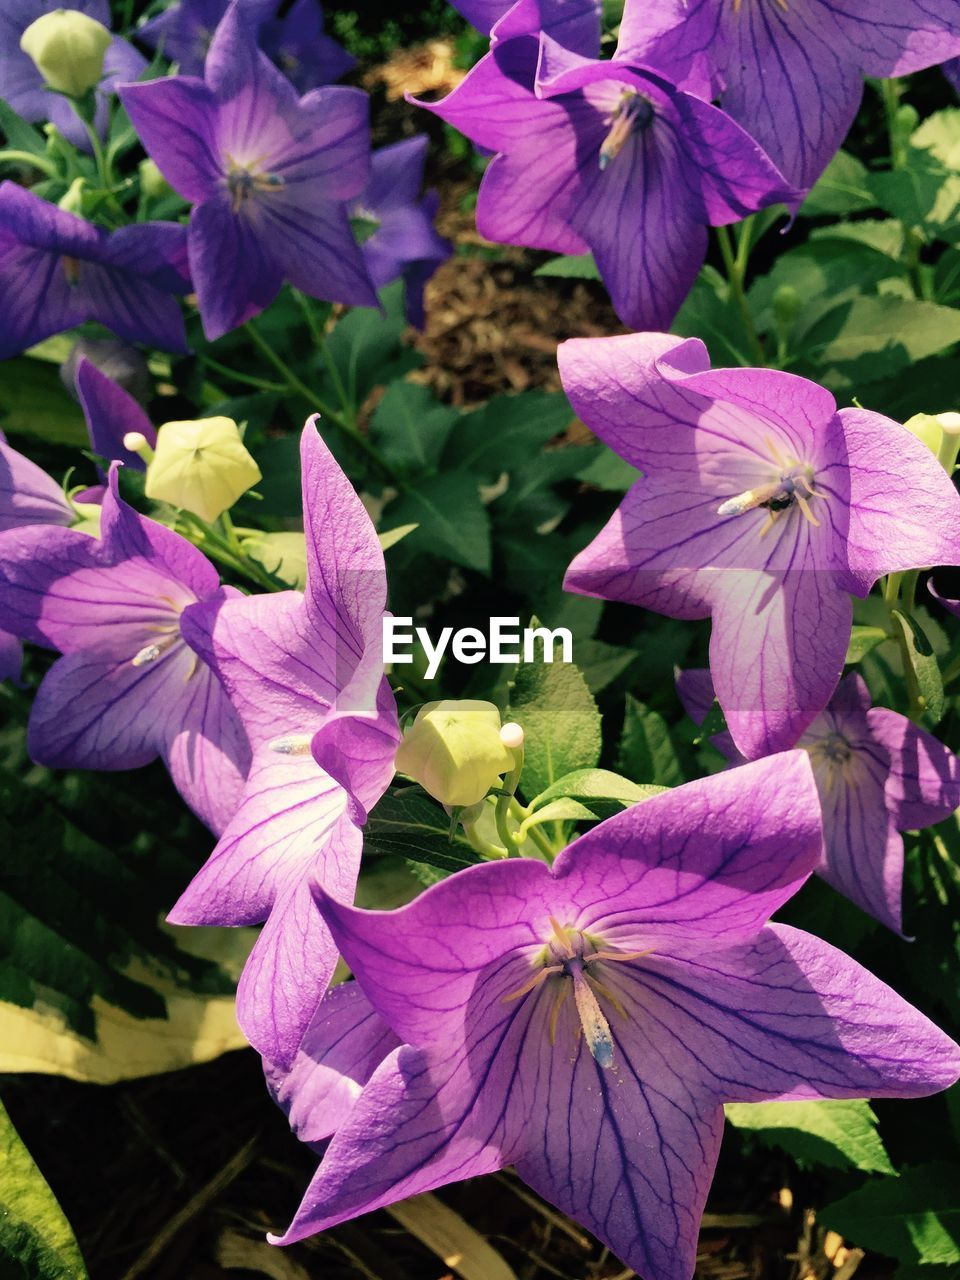 flower, purple, petal, growth, fragility, beauty in nature, freshness, day, flower head, nature, outdoors, no people, close-up, blooming, petunia, periwinkle